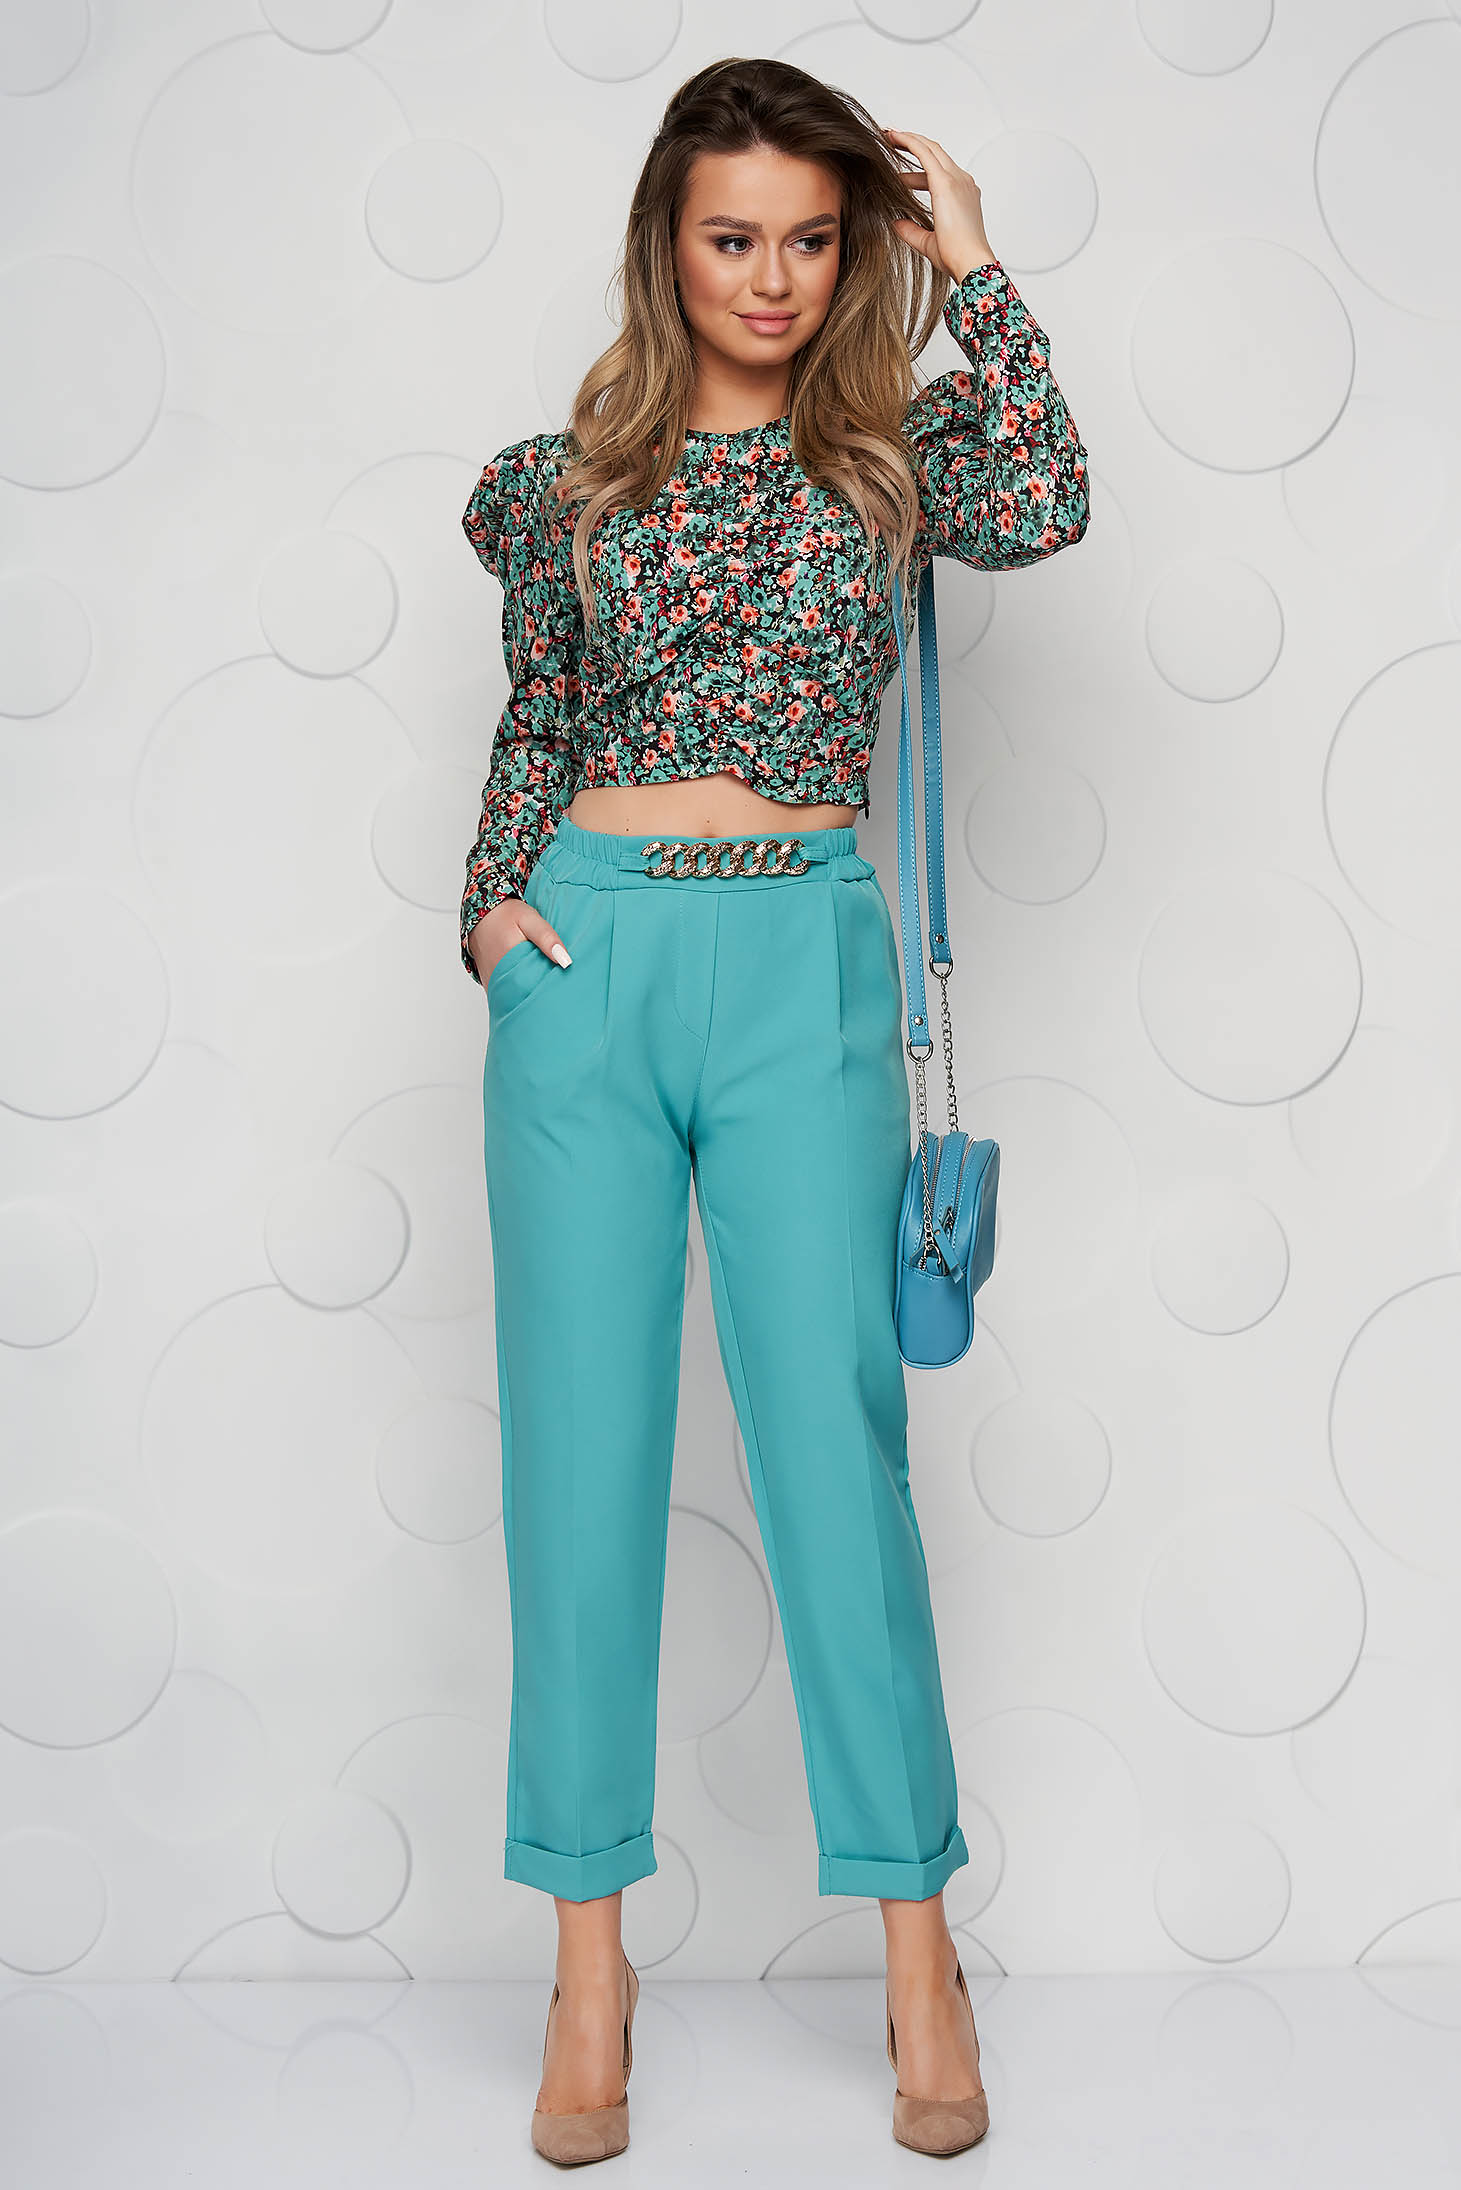 Turquoise trousers metallic chain accessory loose fit nonelastic fabric